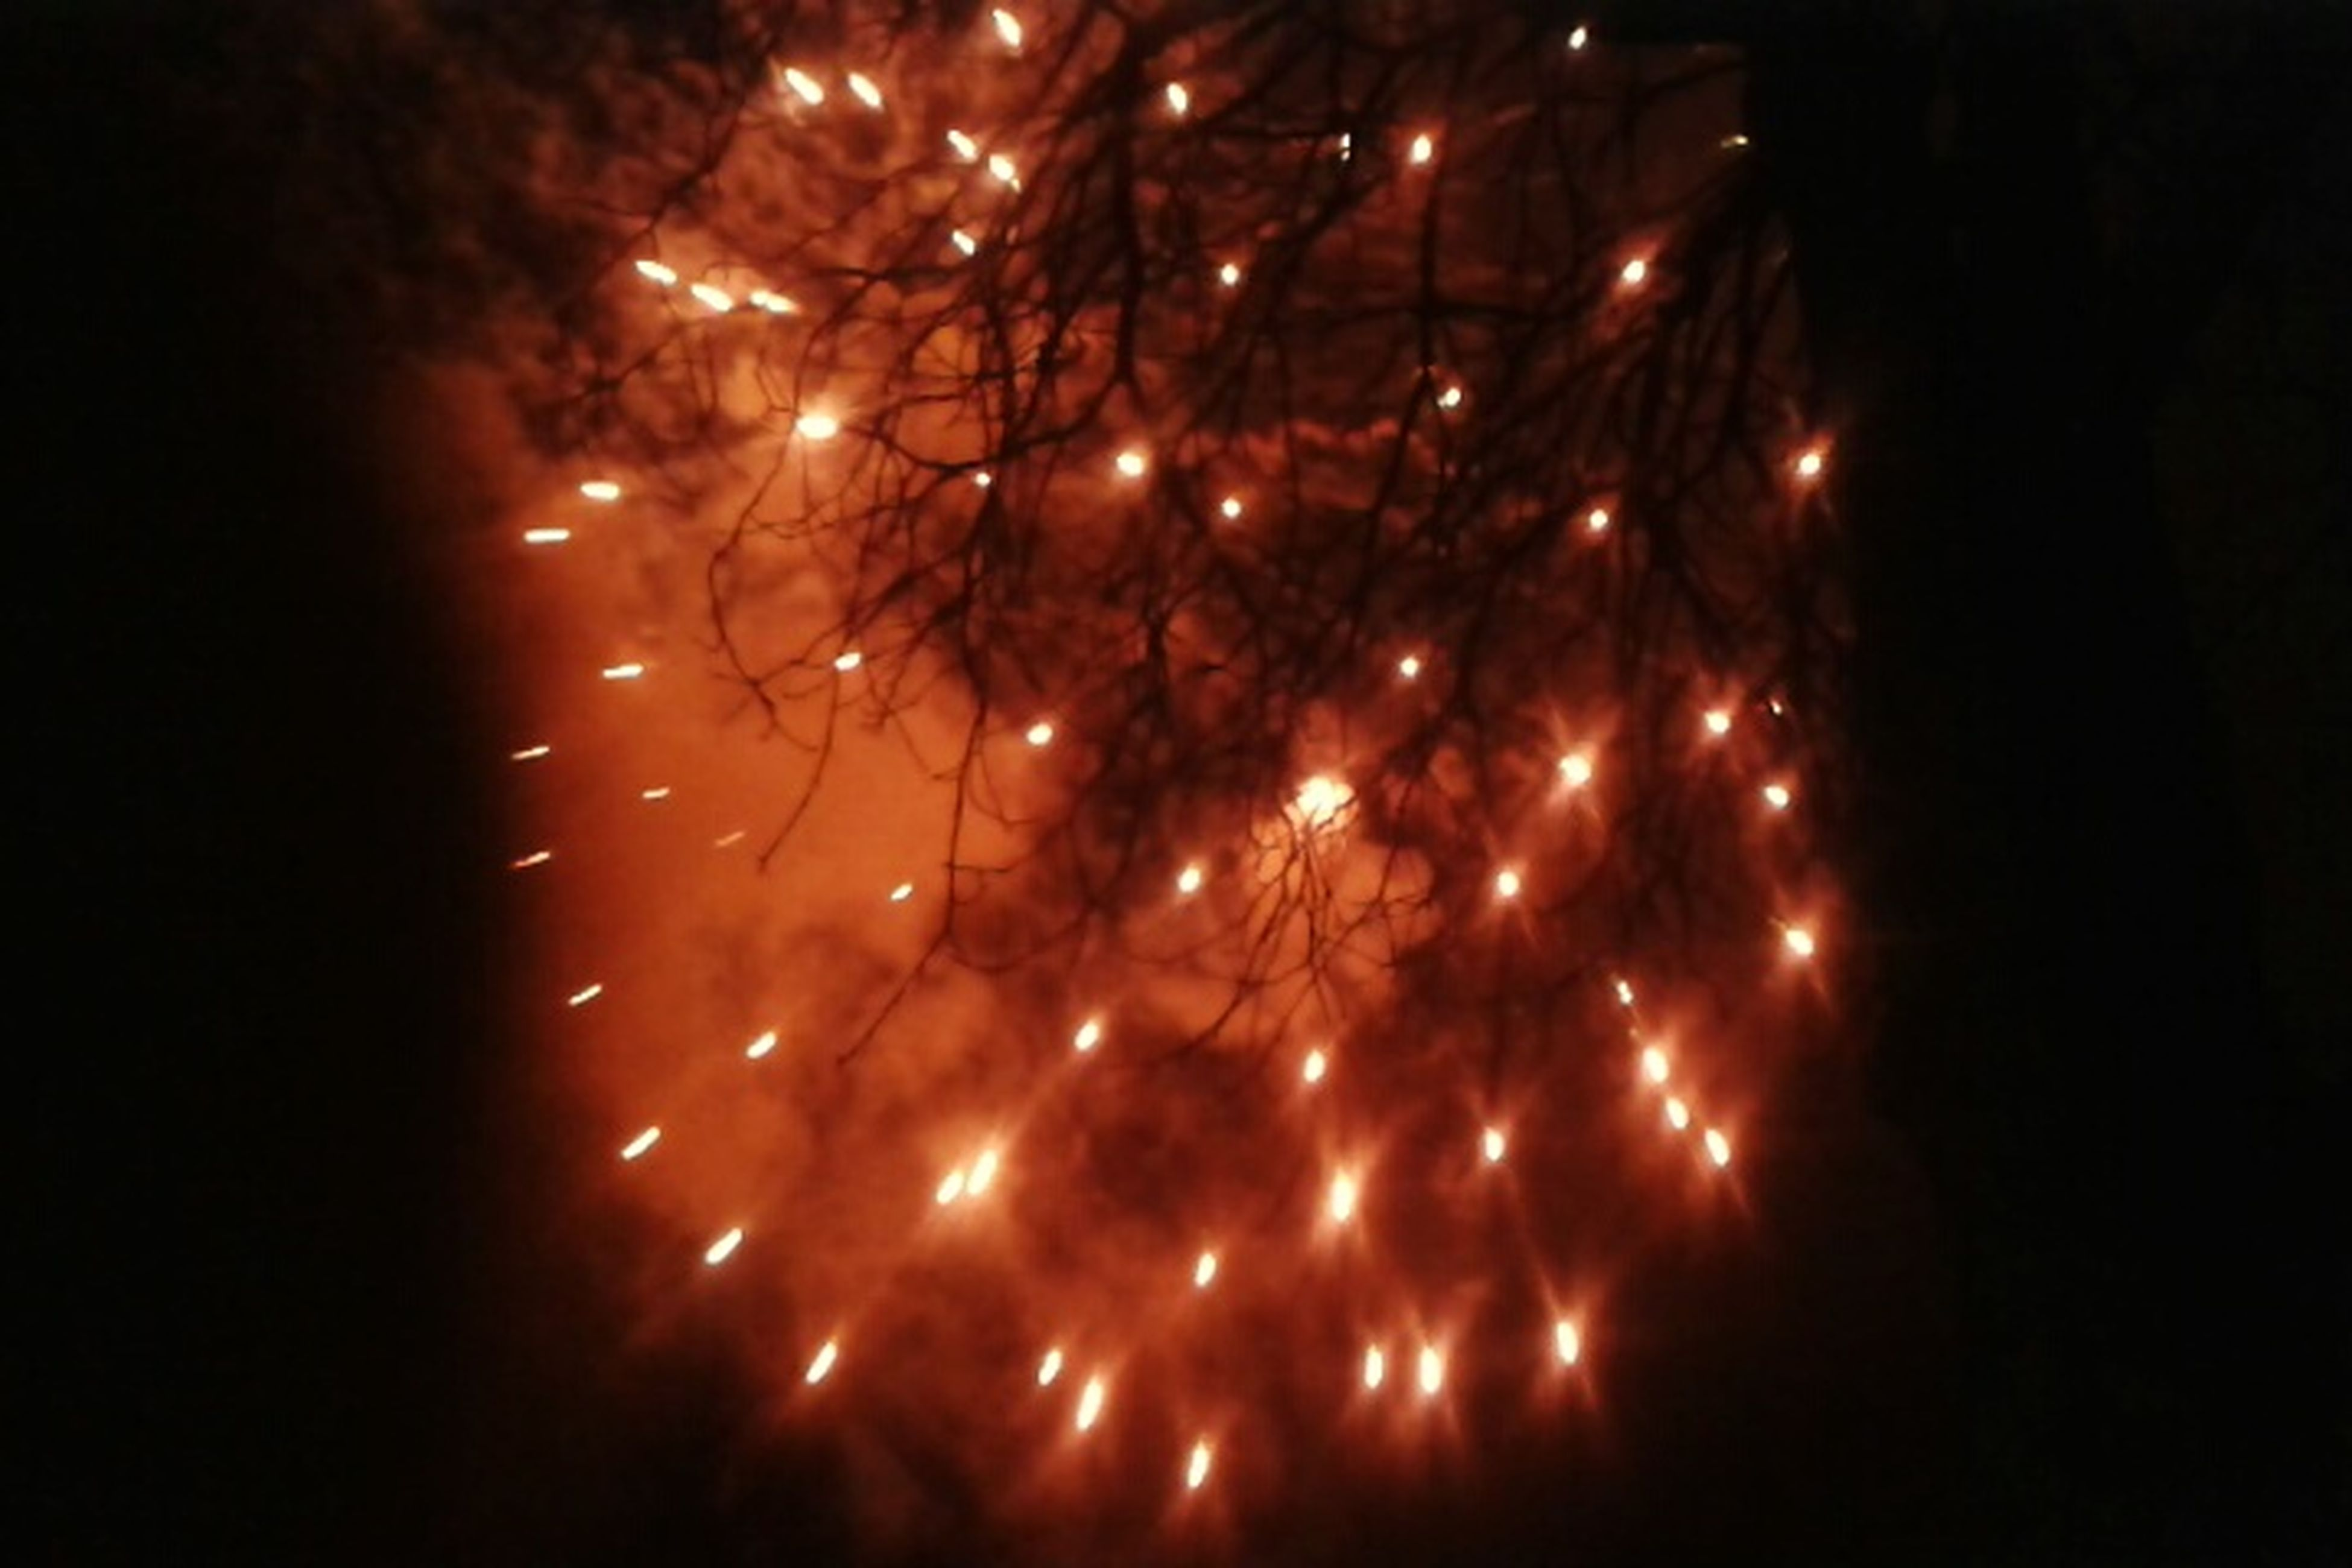 night, illuminated, long exposure, firework display, motion, glowing, sparks, exploding, low angle view, celebration, firework - man made object, sky, firework, blurred motion, arts culture and entertainment, dark, event, outdoors, no people, light